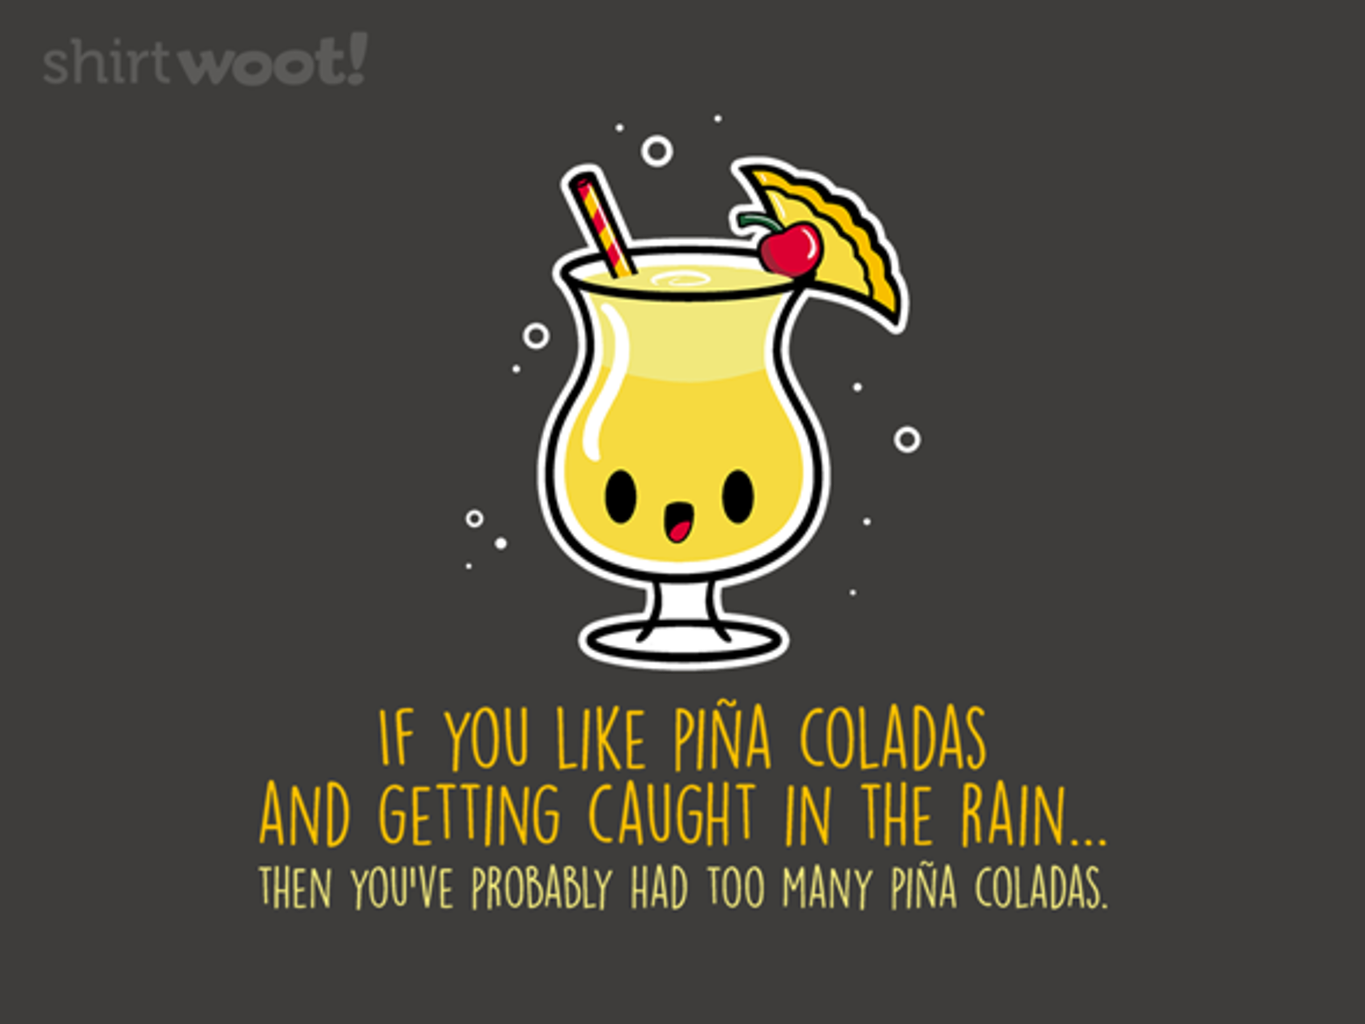 Woot!: Pina Coladas and Rain - $15.00 + Free shipping